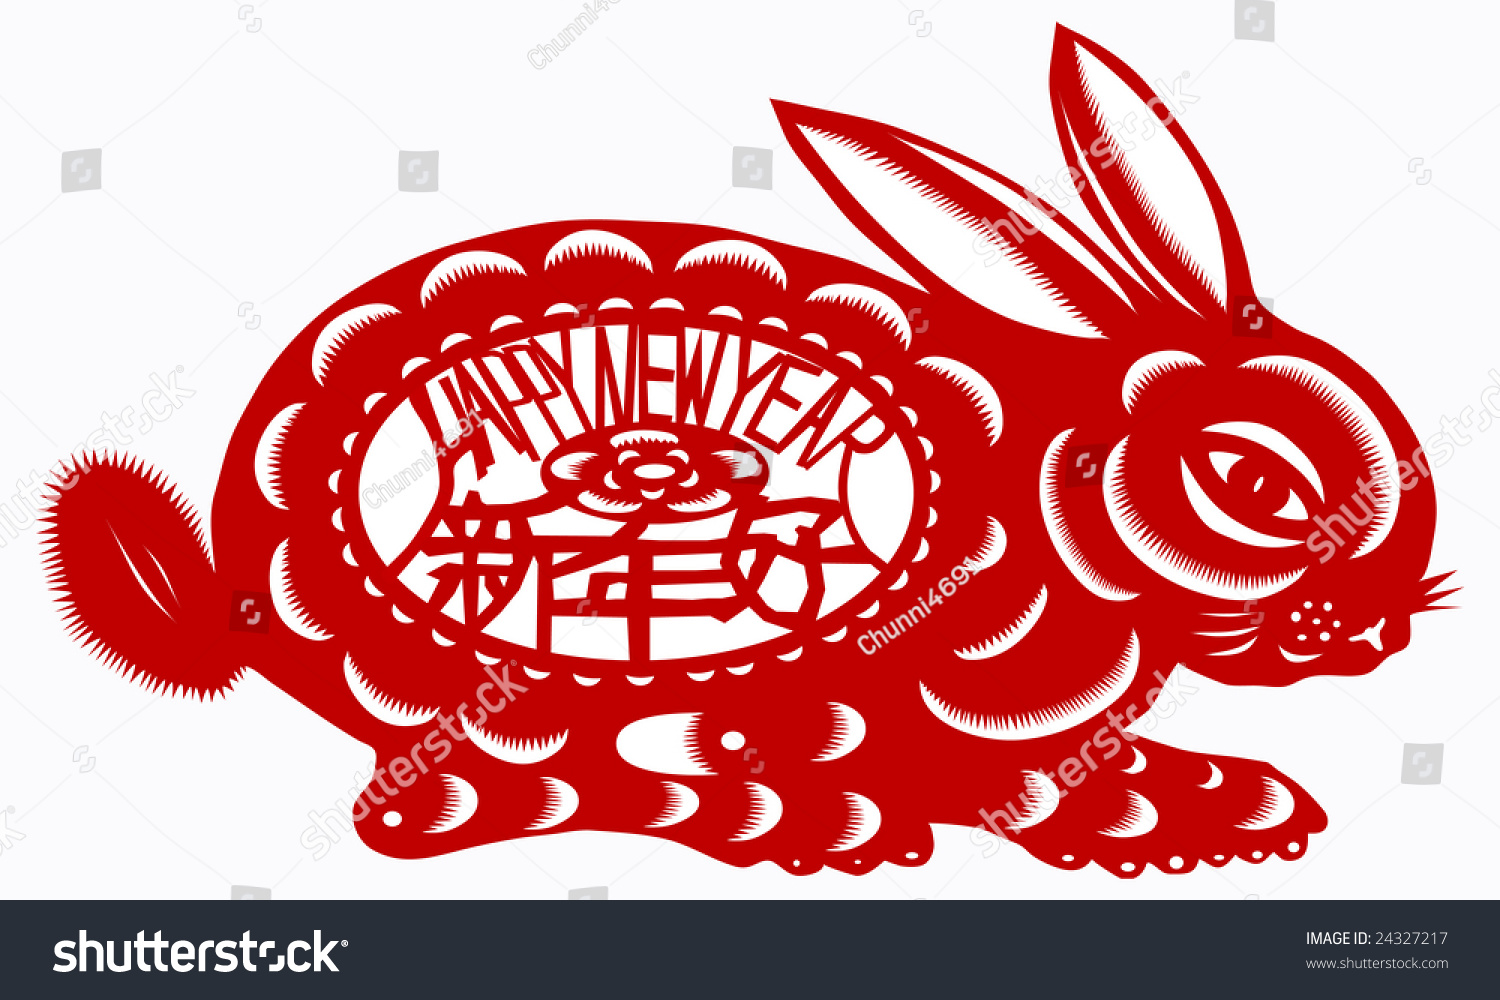 chinese zodiac rabbit year three chinese stock vector 24327217 shutterstock. Black Bedroom Furniture Sets. Home Design Ideas